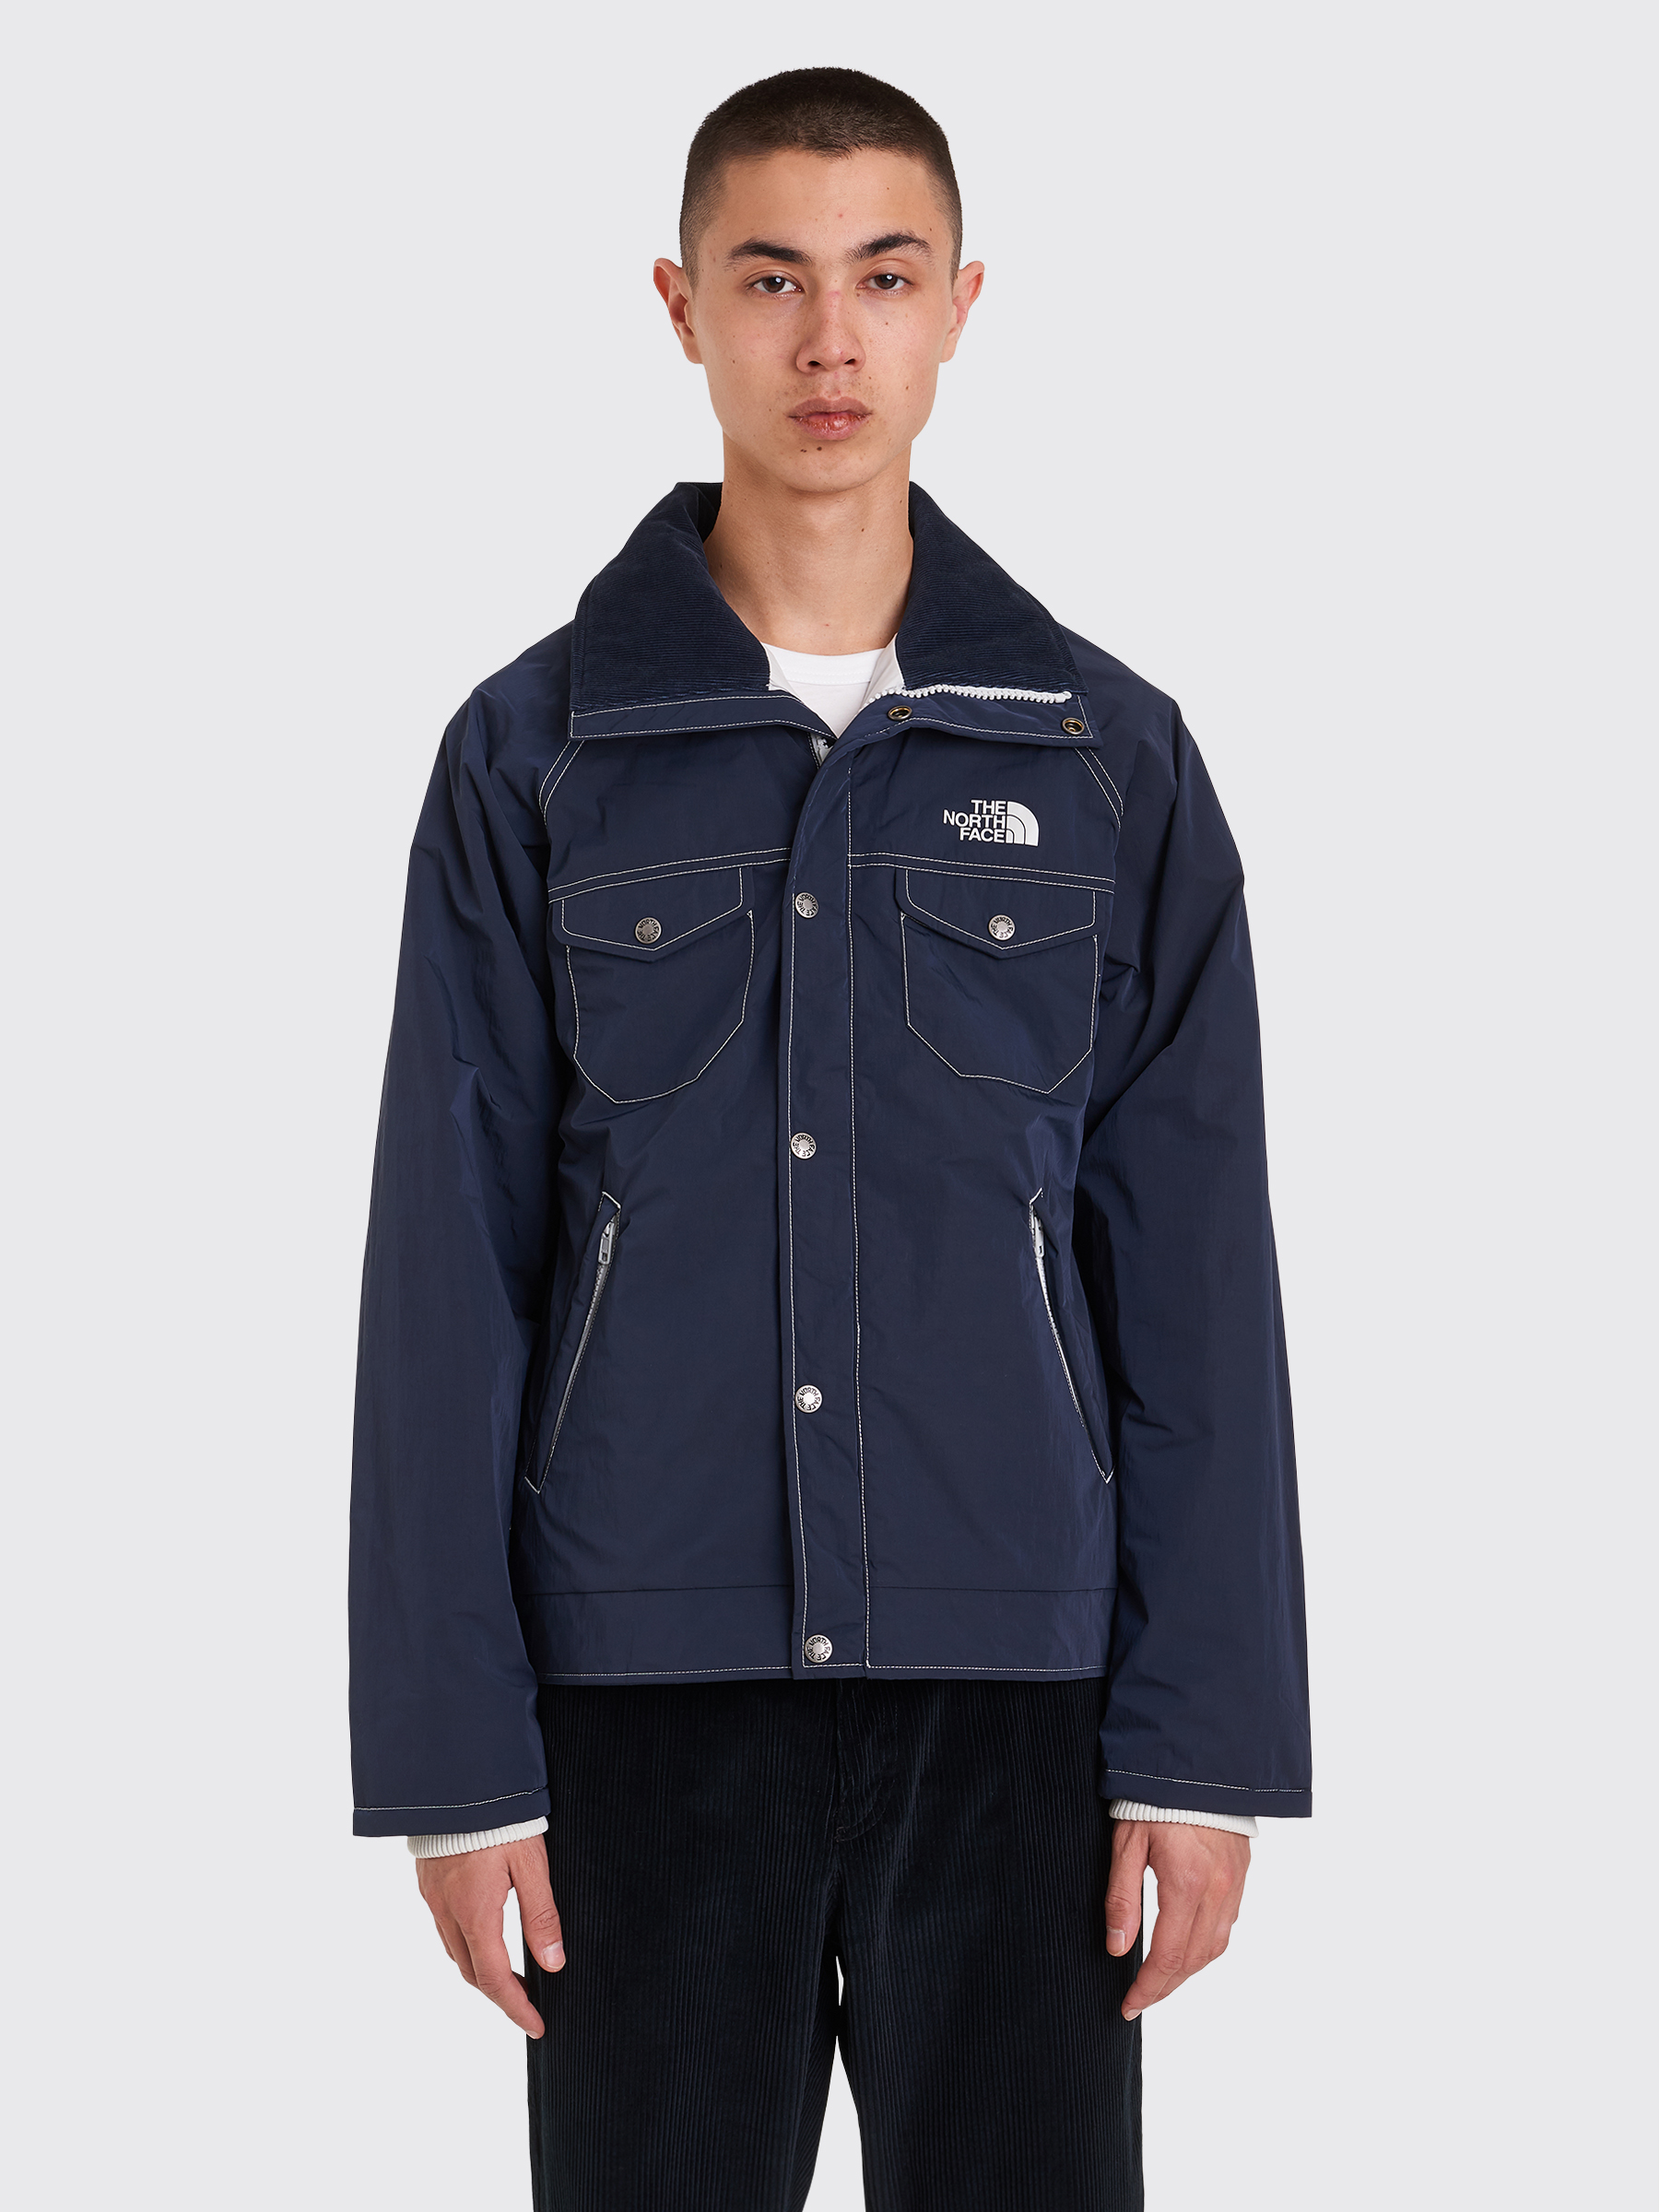 7b4189c7e Junya Watanabe MAN x The North Face Jacket Navy